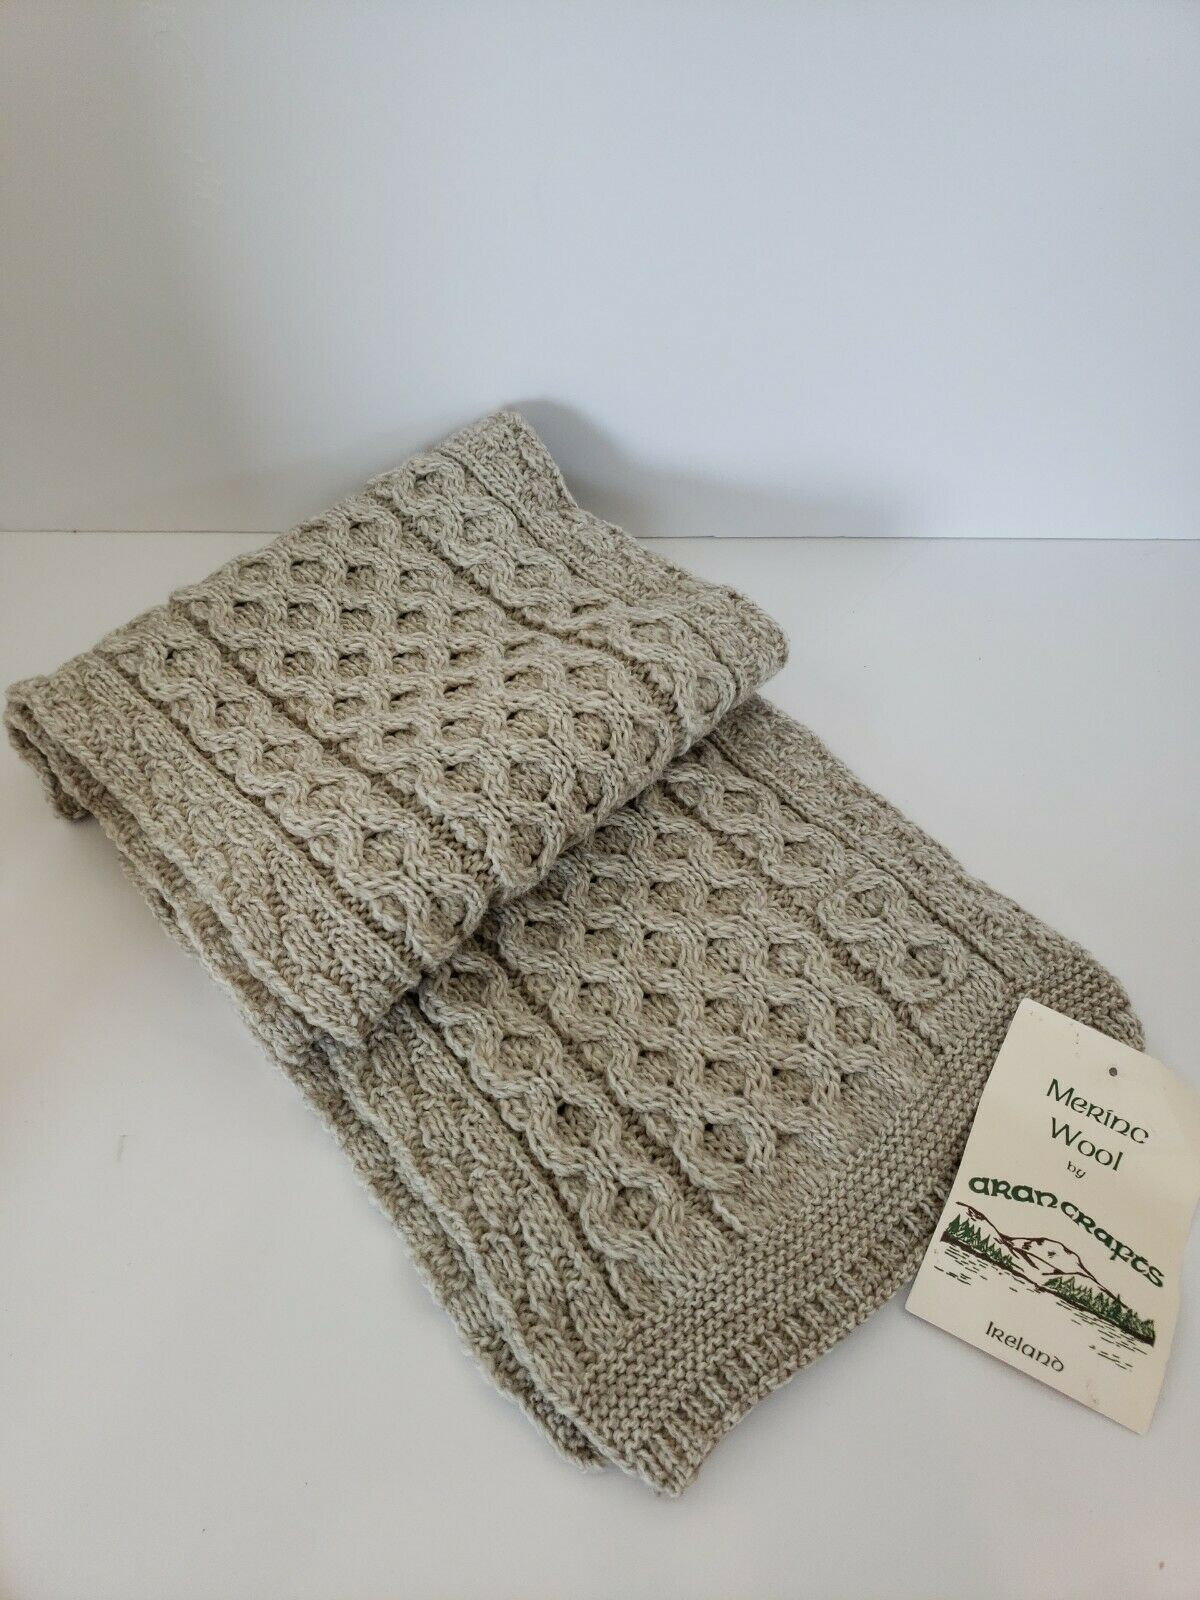 Aran Crafts scarf   100% Merino Wool Scarf Made in Ireland. New with tags